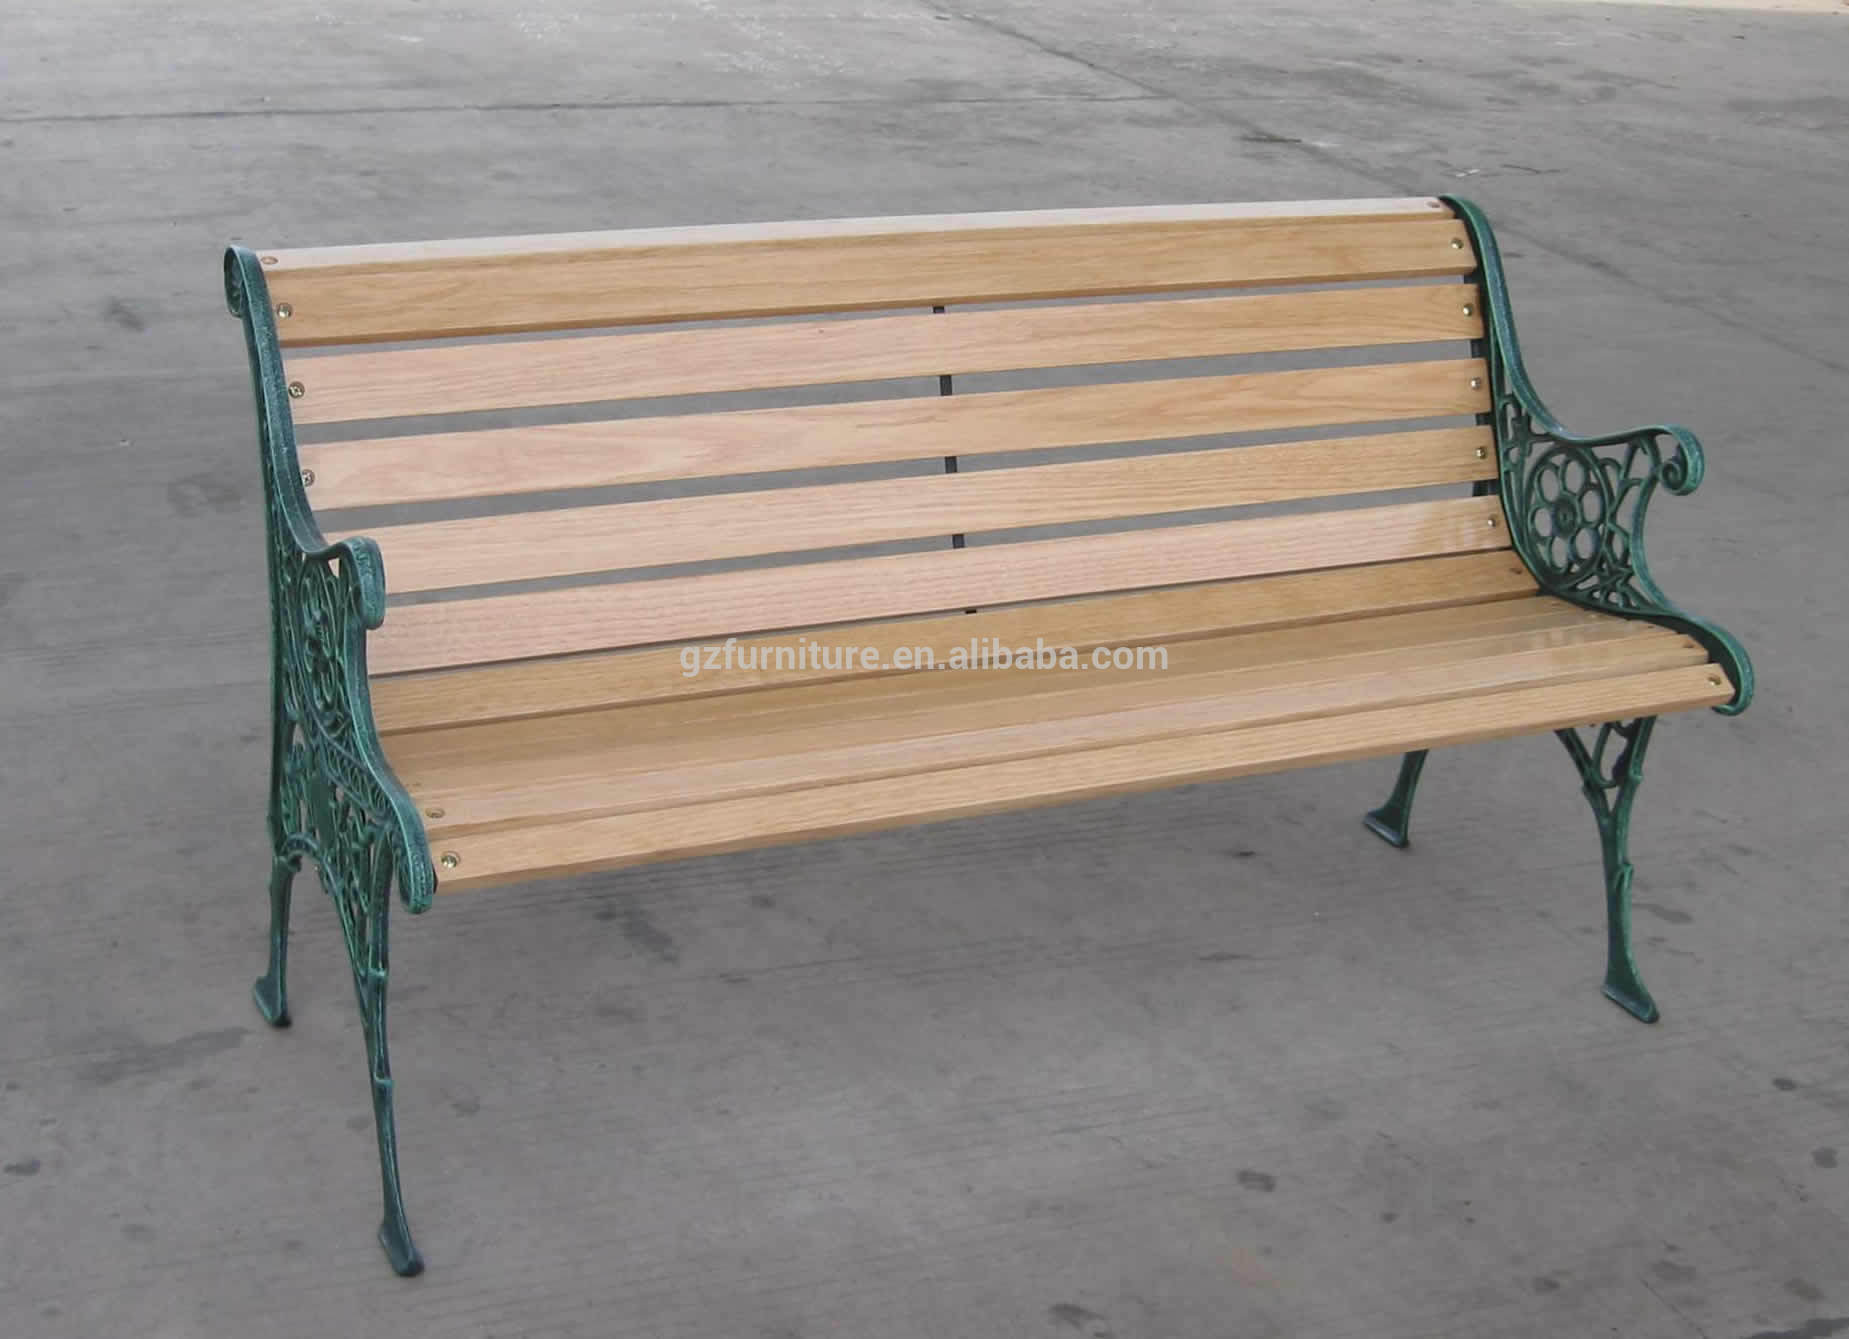 Bench clipart taman Bench Manufacturers com and